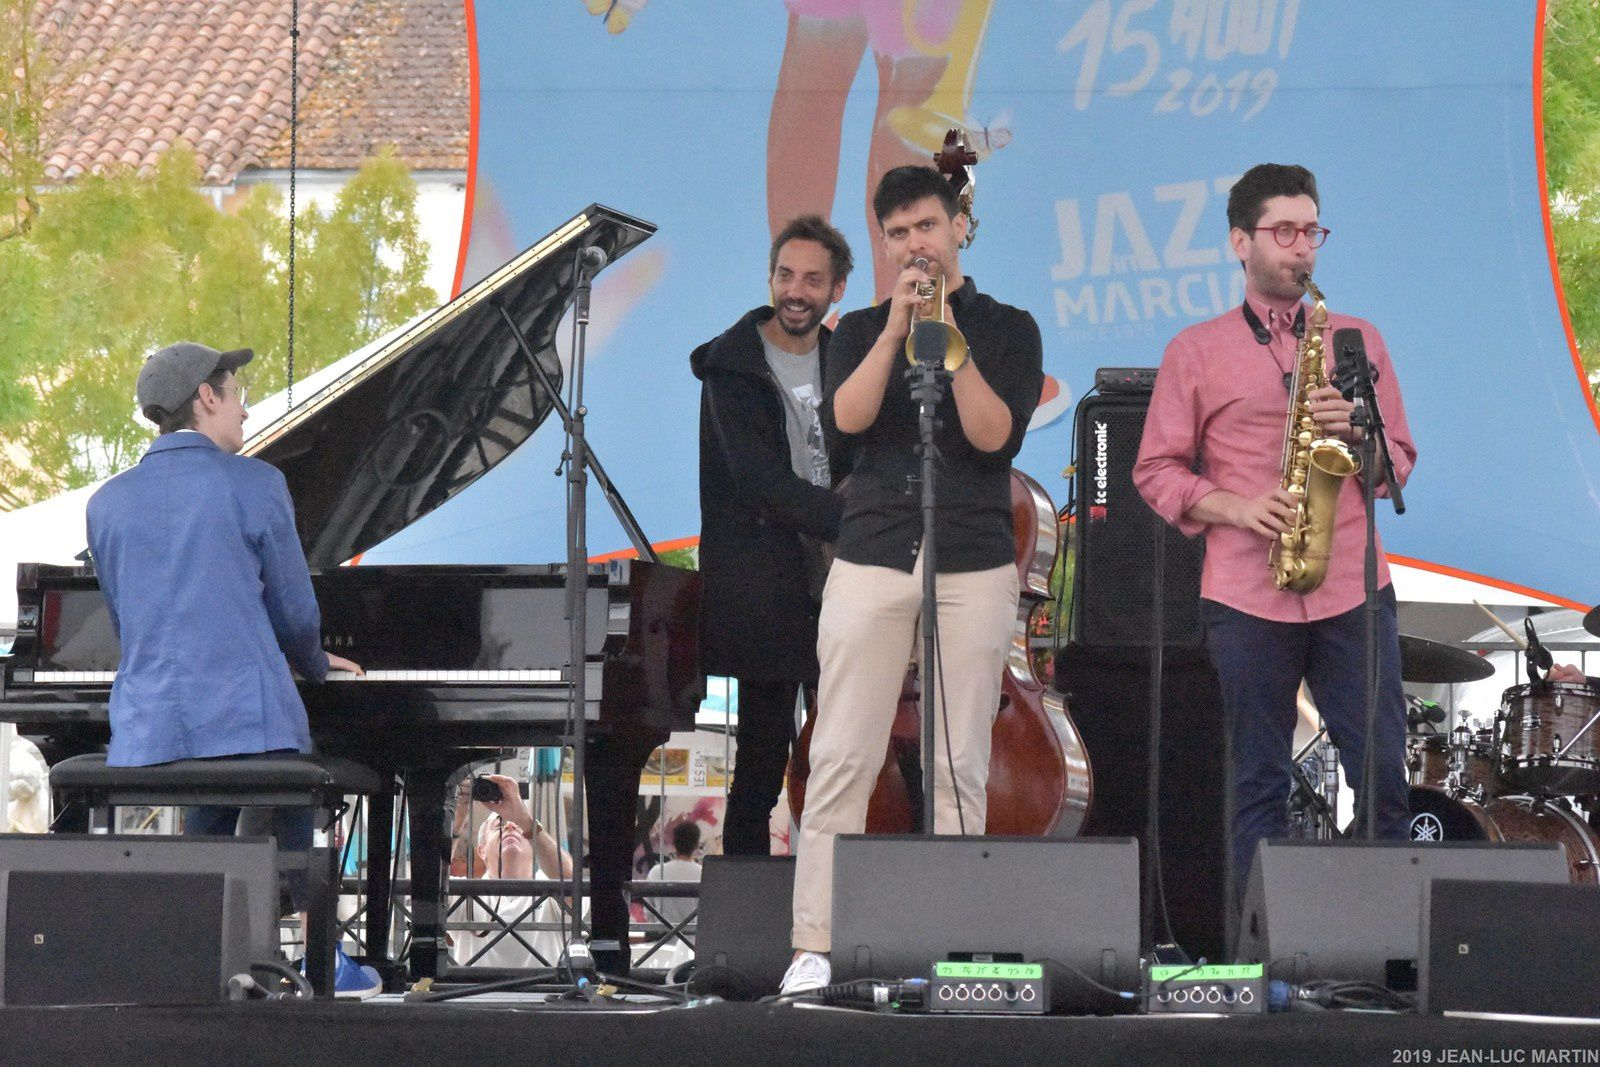 THE MEETING QUINTET A JAZZ IN MARCIAC LE 30/7/2019